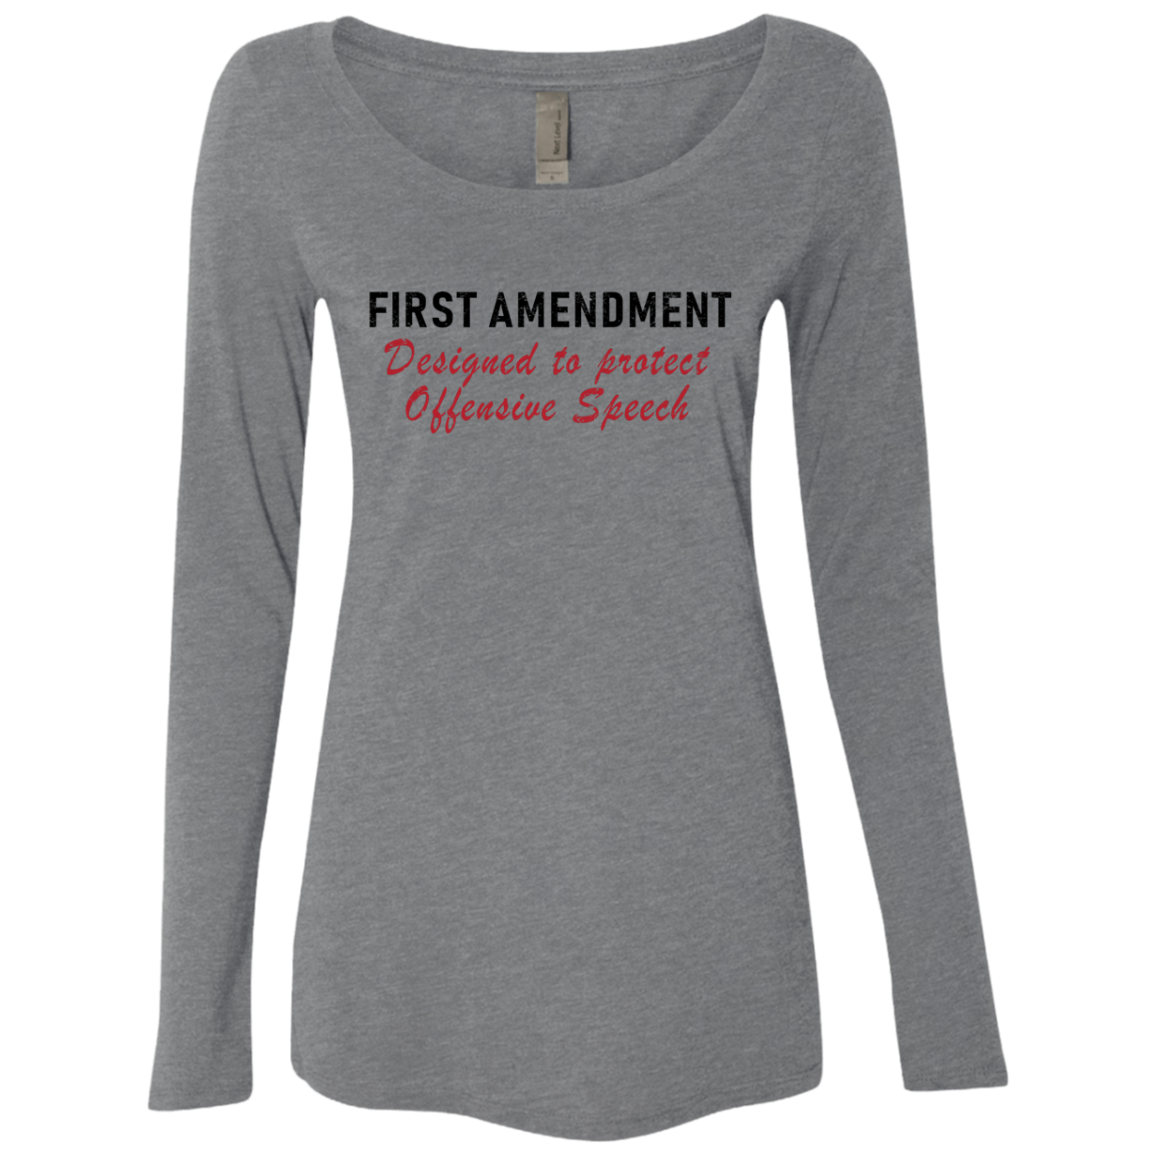 First Amendment Designed To Protect Offensive Speech Women's Long Sleeve Tee